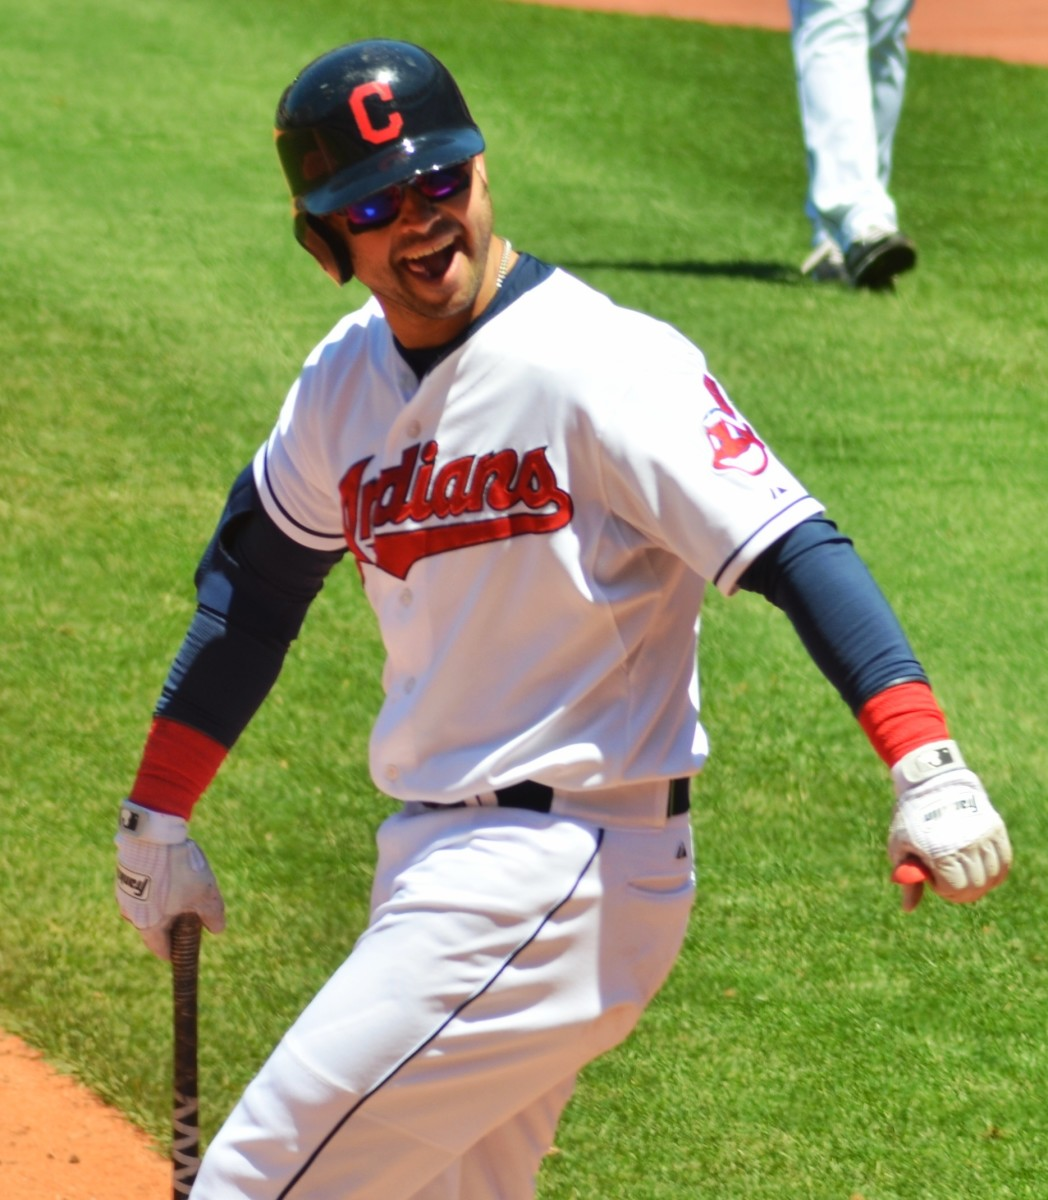 After losing 94 games in 2012, the Indians made a big free agent signing of Nick Swisher, who helped the Indians clinch a playoff spot with a wild card in 2013.